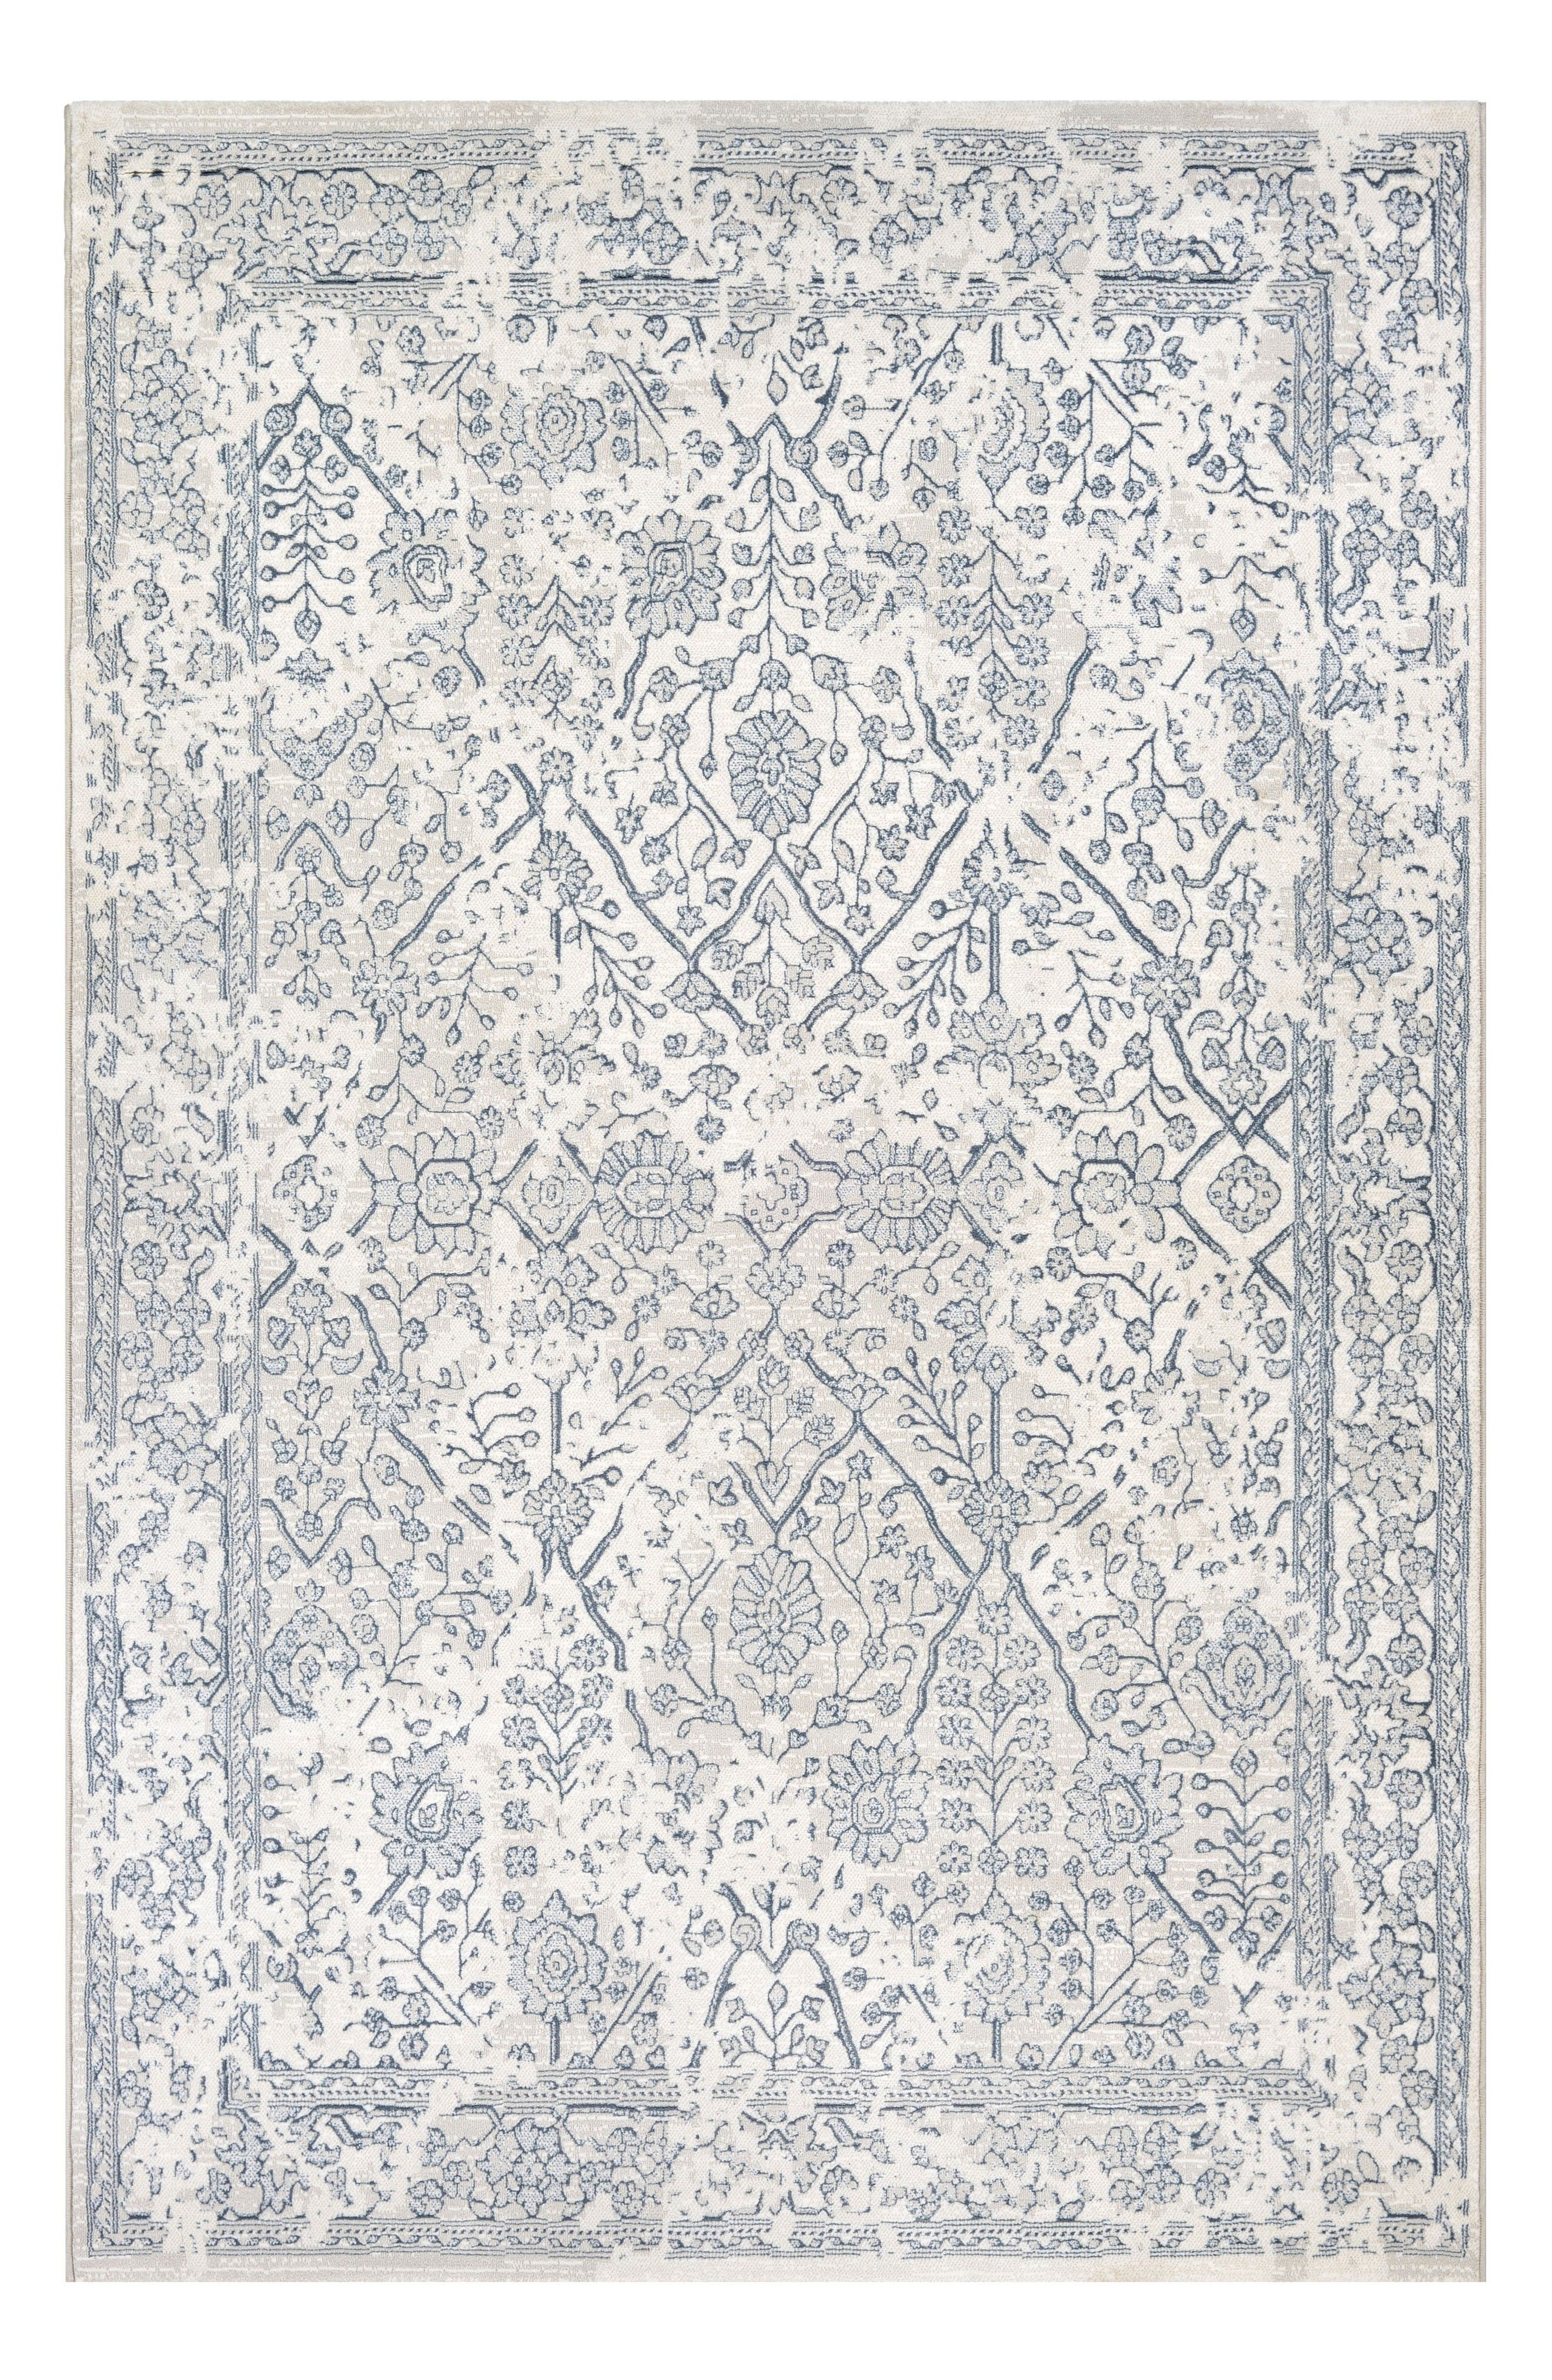 Alternate Image 1 Selected - Couristan Lillian Indoor/Outdoor Rug